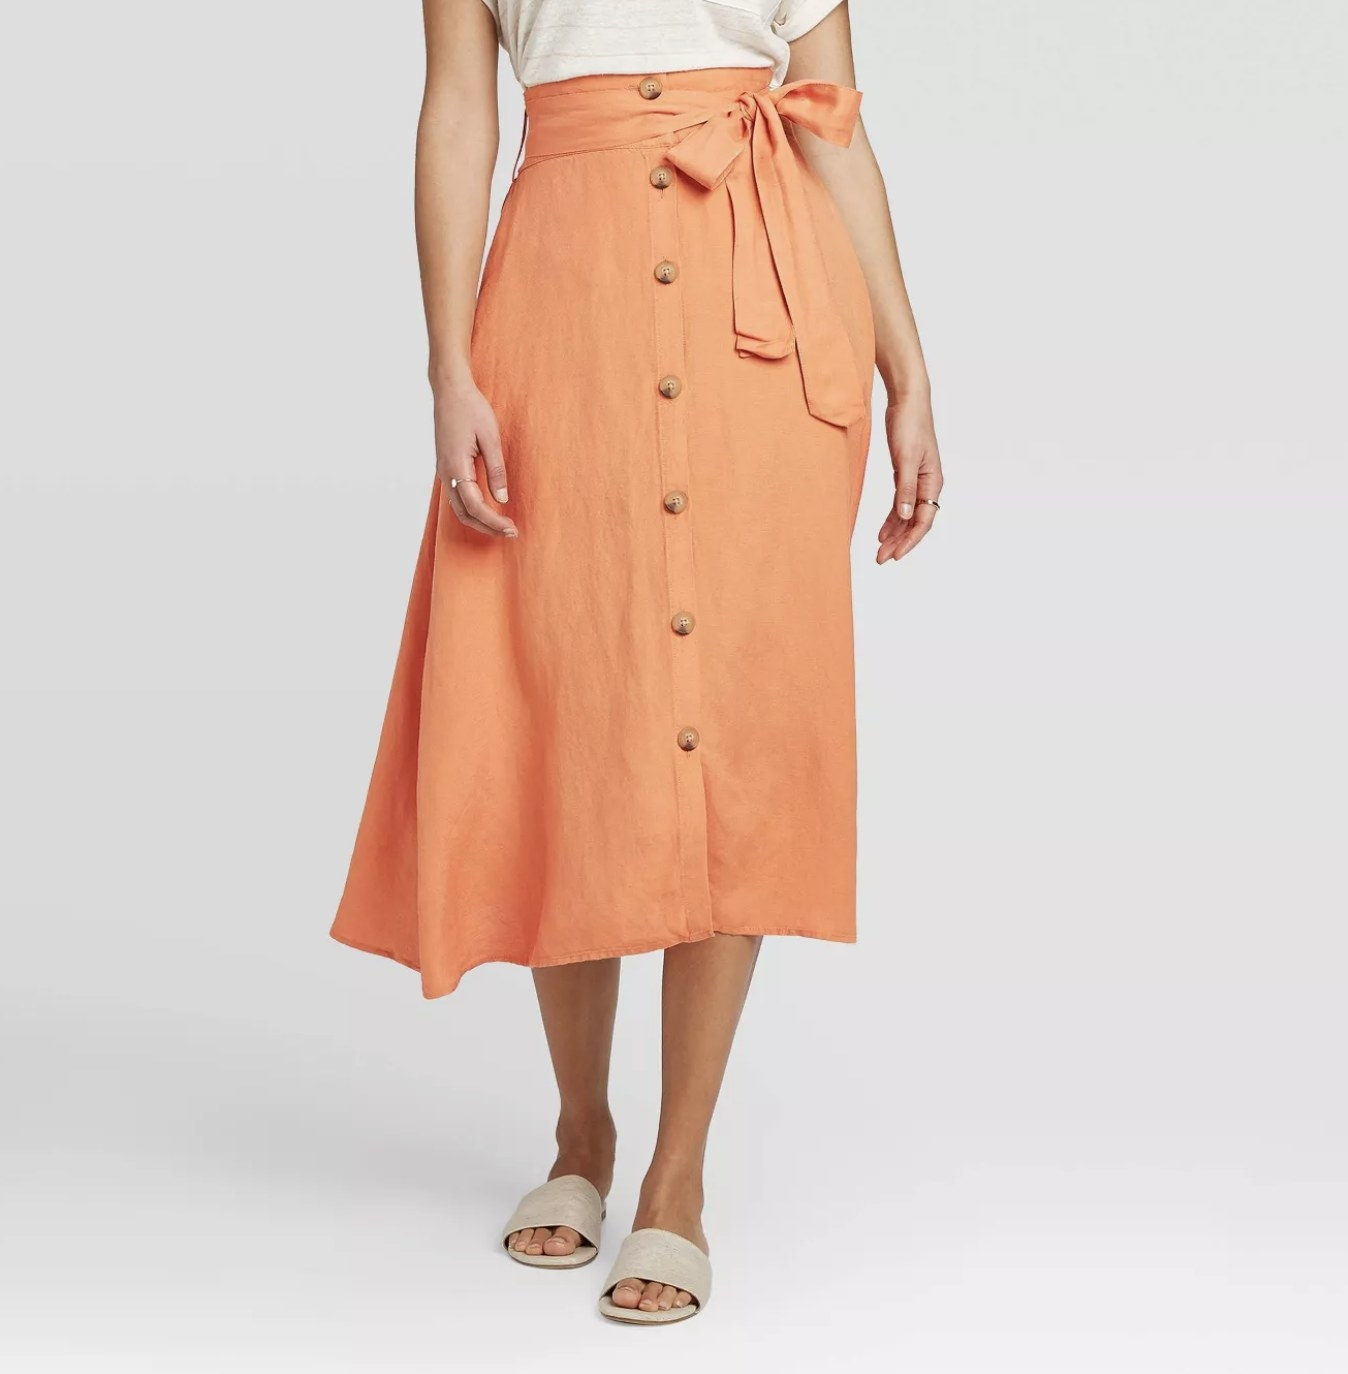 Model wearing the belted, button-down midi skirt